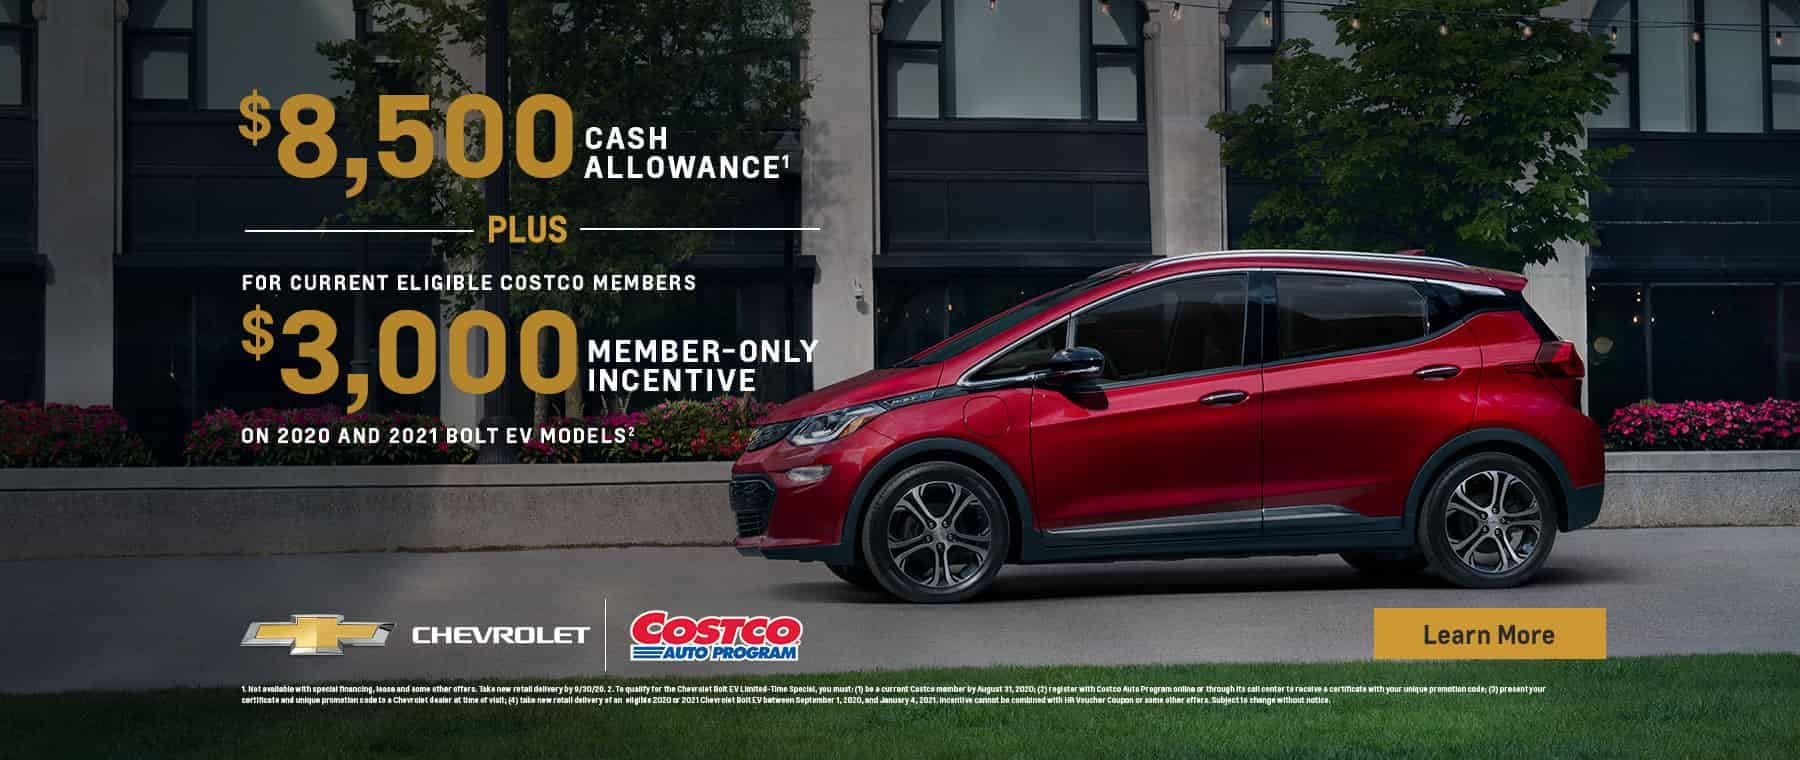 Special Costco Members Offer on 2020 and 2021 Bolt EV Models